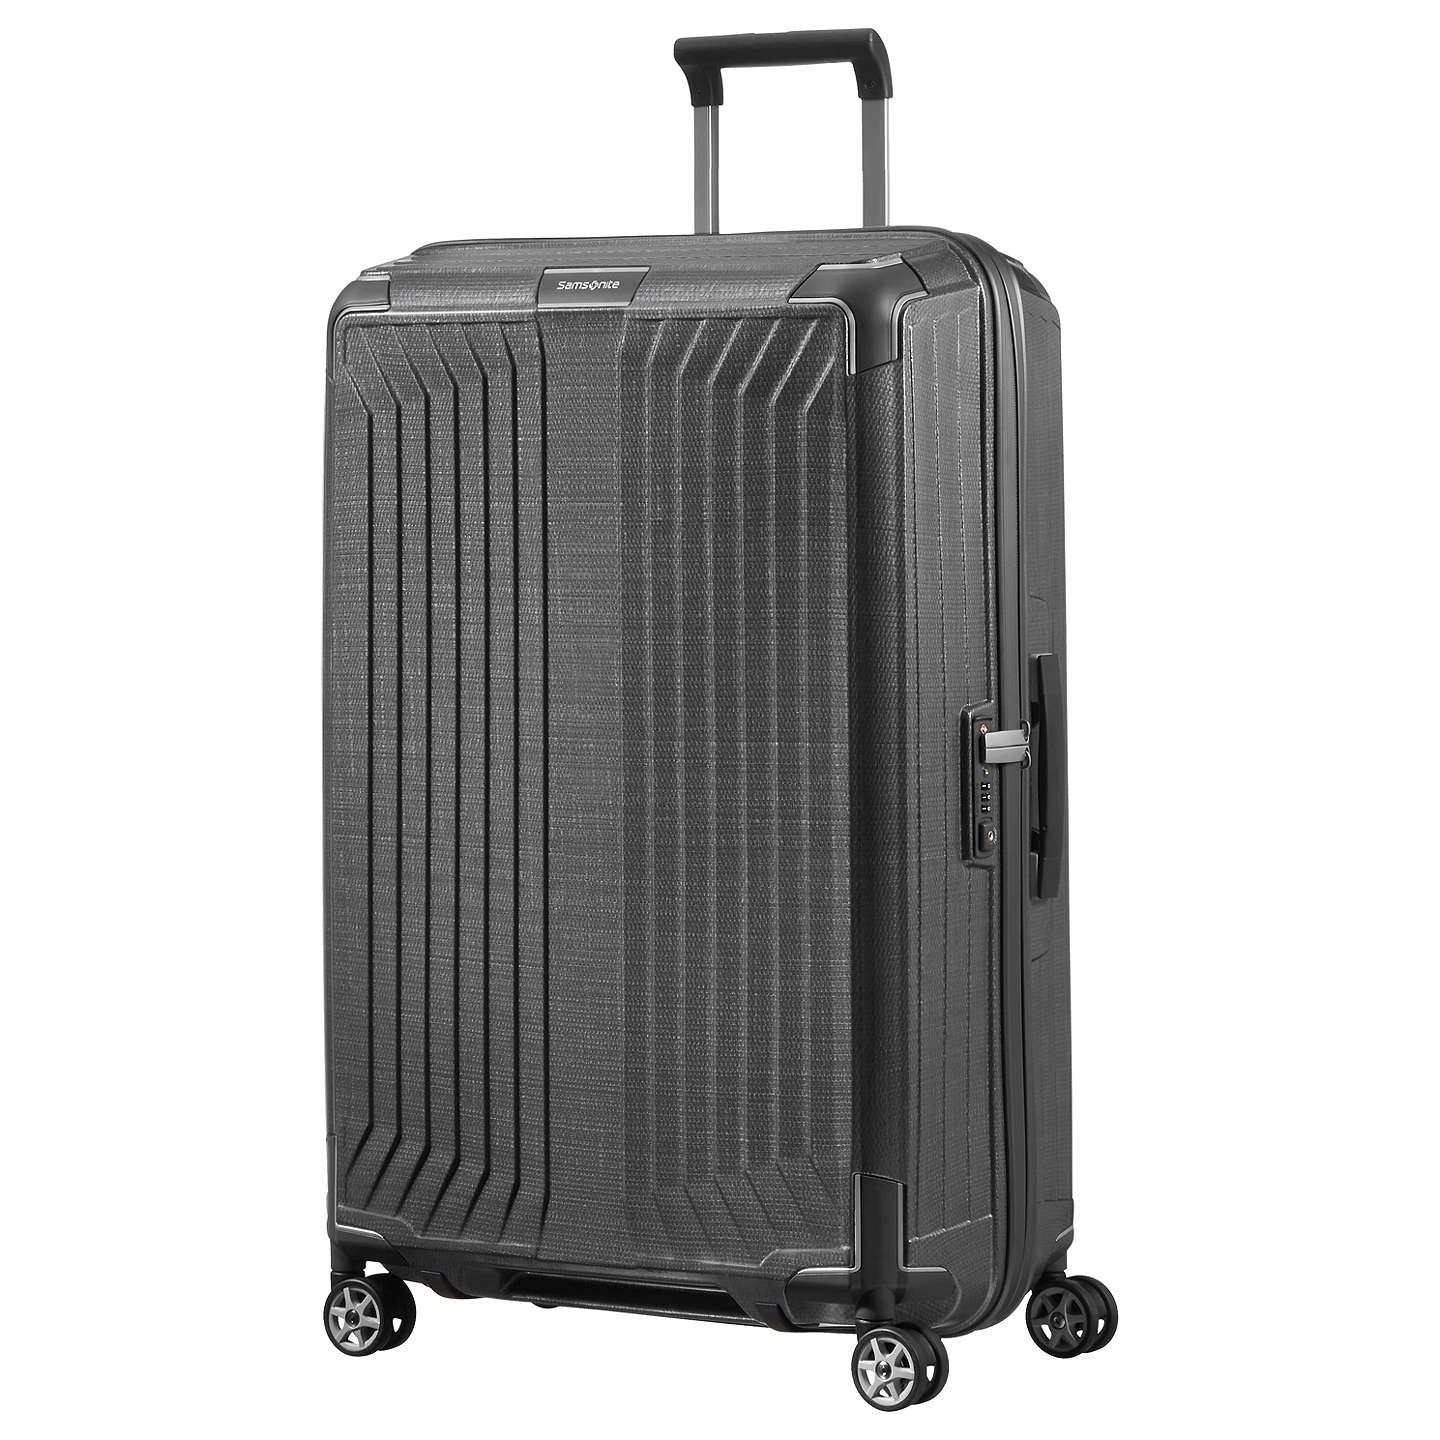 samsonite lite box 75cm 4 spinner wheel suitcase at john lewis. Black Bedroom Furniture Sets. Home Design Ideas